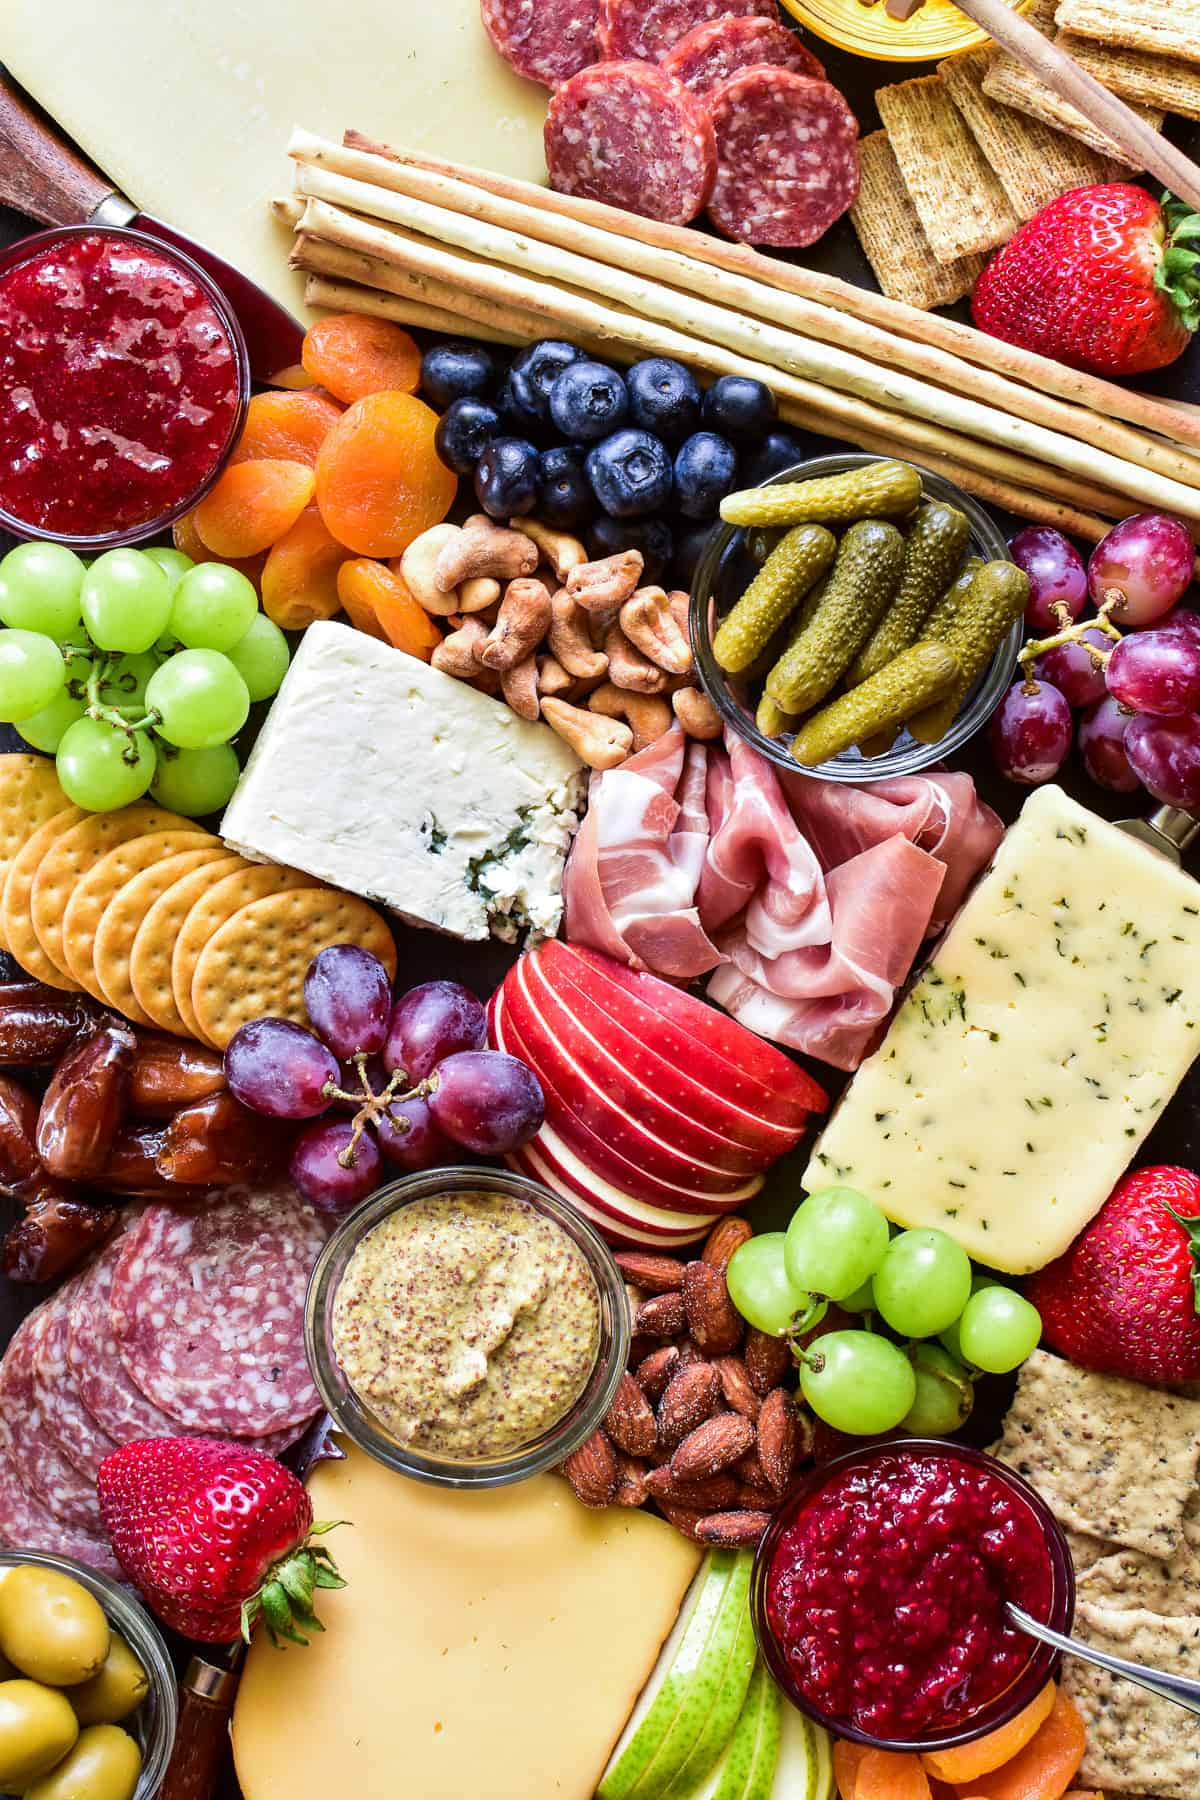 Overhead shot of meats, cheeses, crackers, fruits, nuts, and condiments on a charcuterie board